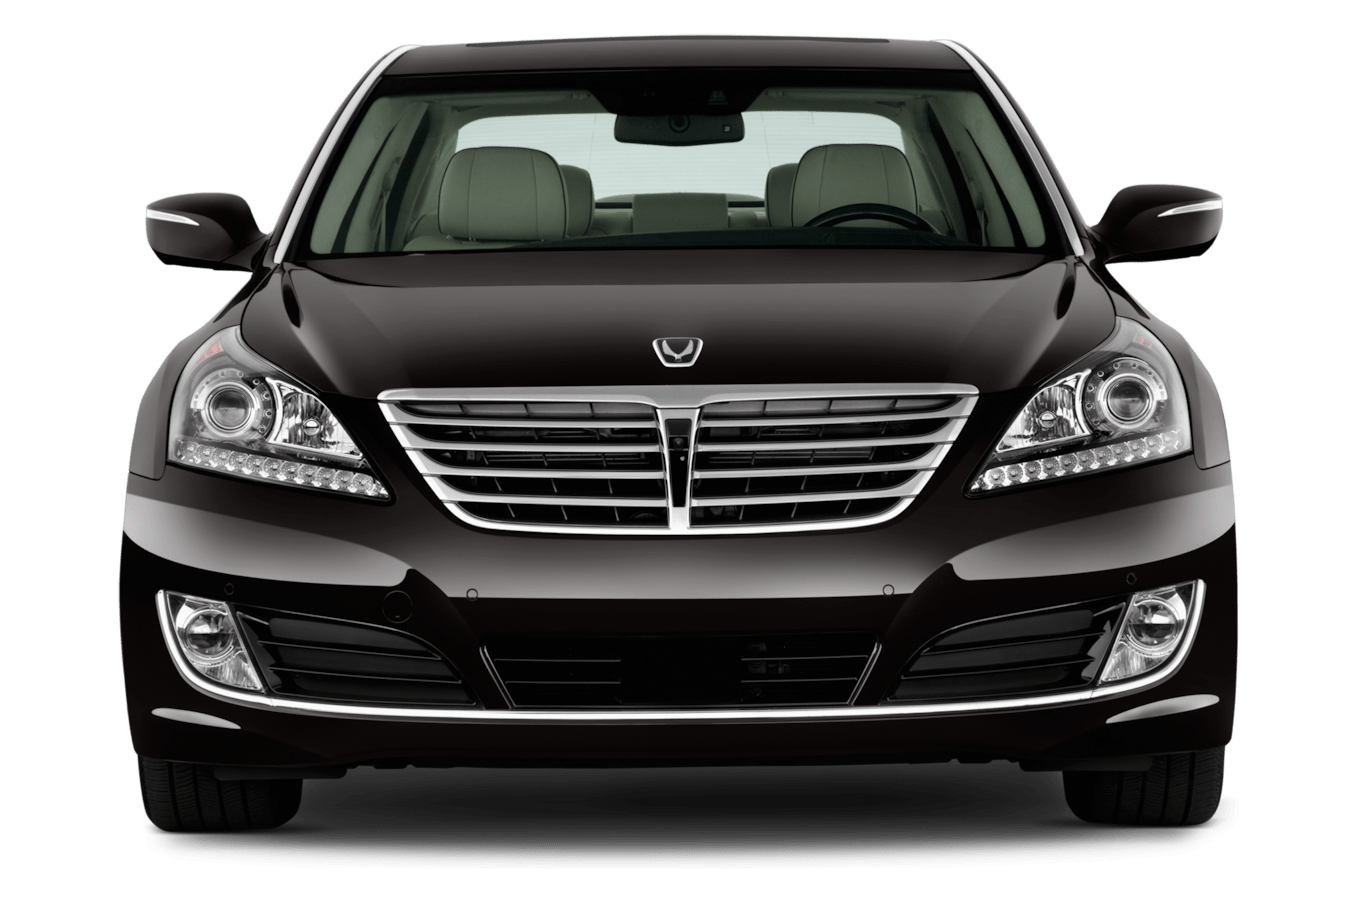 View detailed specs, features and options for all the 2020 hyundai venue configurations and trims at u.s. 2016 Hyundai Equus Reviews - Research Equus Prices & Specs